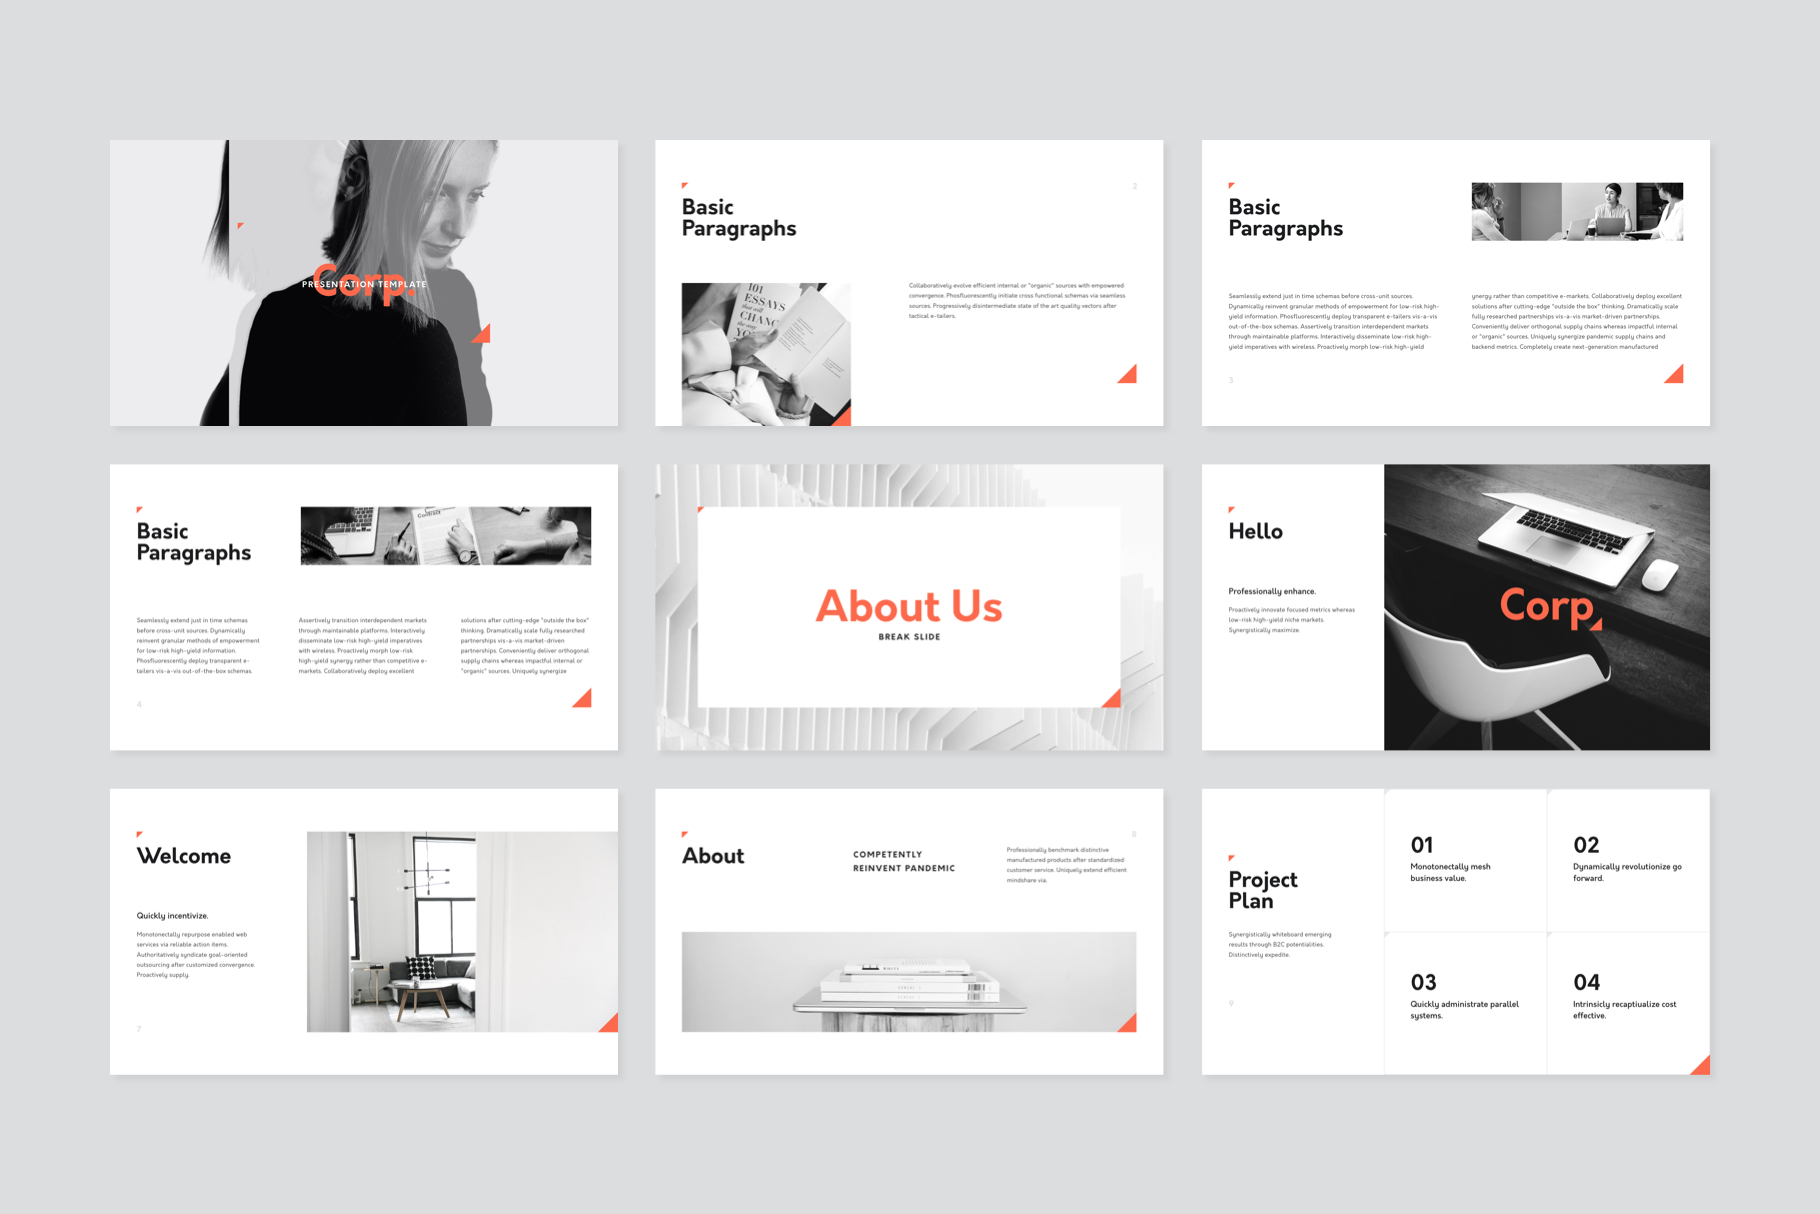 Corp Keynote Presentation Template example image 2